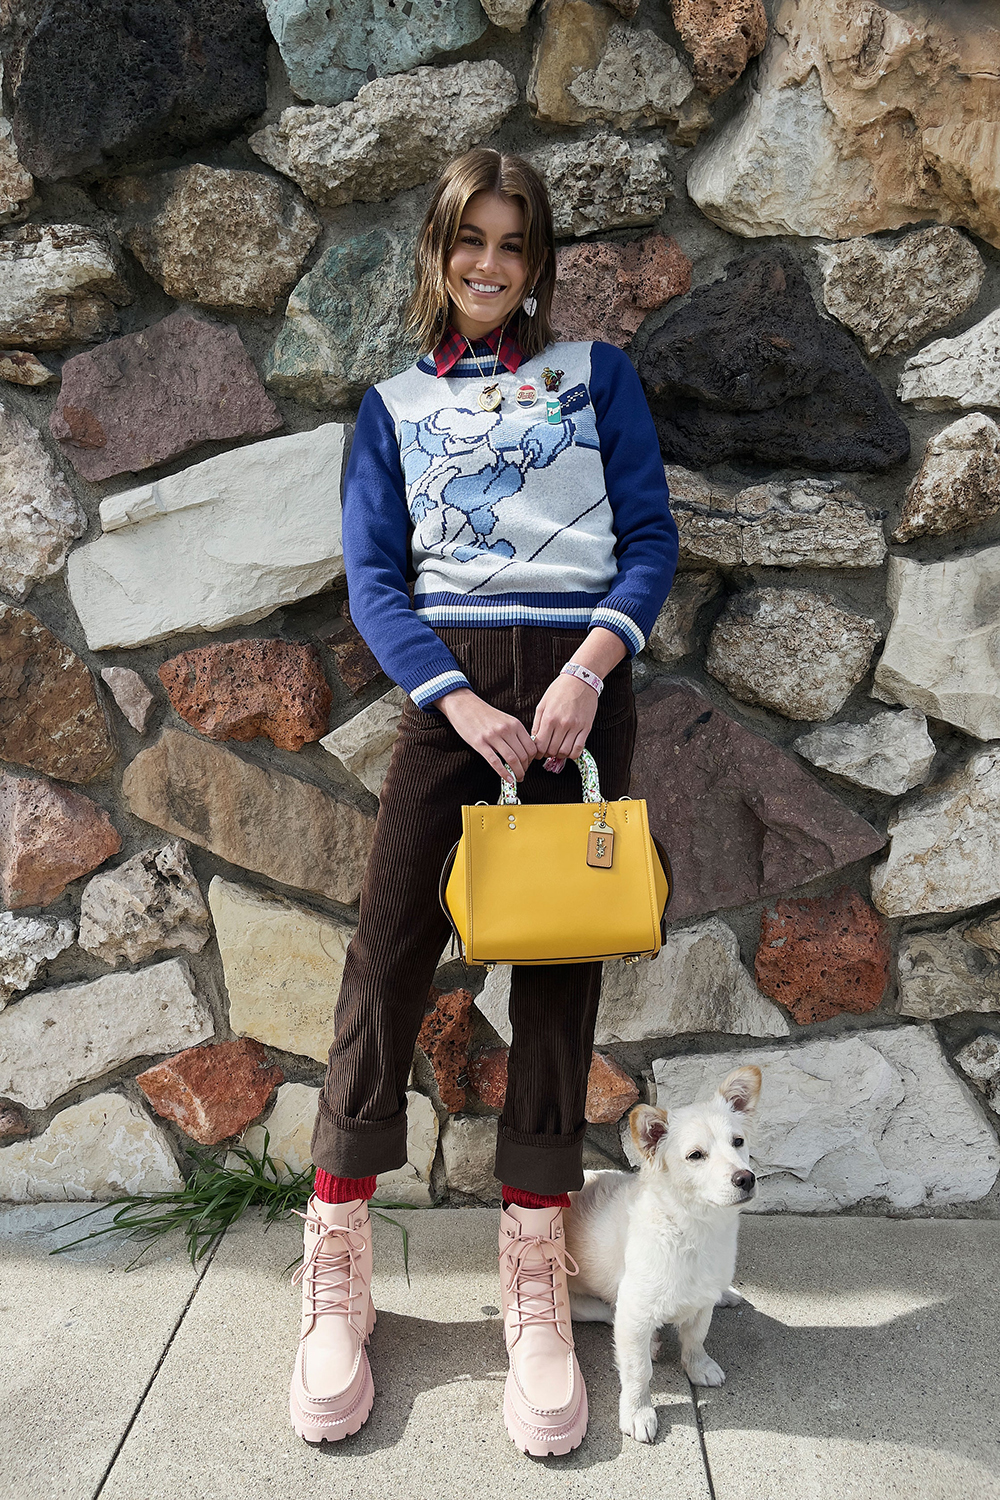 COACH Fall 2021 Collection Corduroy Pants and Mickey Mouse Sweater I DreaminLace.com #fashionstyle #ootdinspo